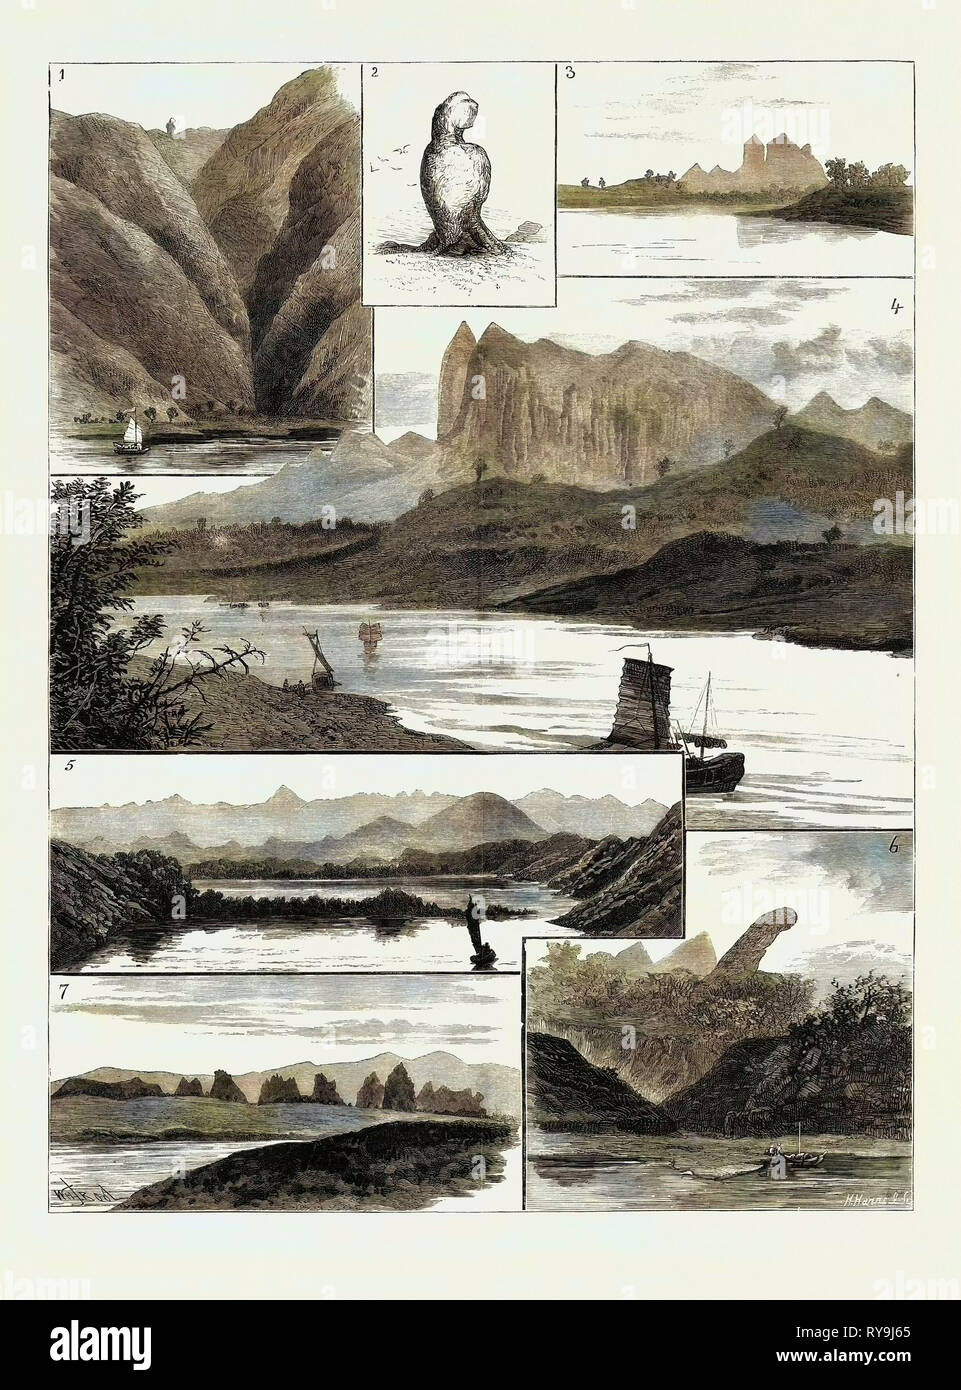 The Colquhoun-Wahab Expedition Through China, Scenes on the Canton River: 1. In the Shau-Hing Gorge: 'the Expectant Wife.', 2. Enlarged Sketch of 'the Expectant Wife.', 3. View of the Pak-Shik-Shan, or 'White Stone Mountain,' from Tai-Wong, 4. Another View of the Pak-Shik-Shan at a Distance of Twenty Miles, 5. View at Daybreak from Mong-Kong, 6. 'the Detained Husband,' Near Tsun-Pan-Hill, 7. Rugged Isolated 'Needled' Limestone Peaks Near Kwei-Yuen - Stock Image